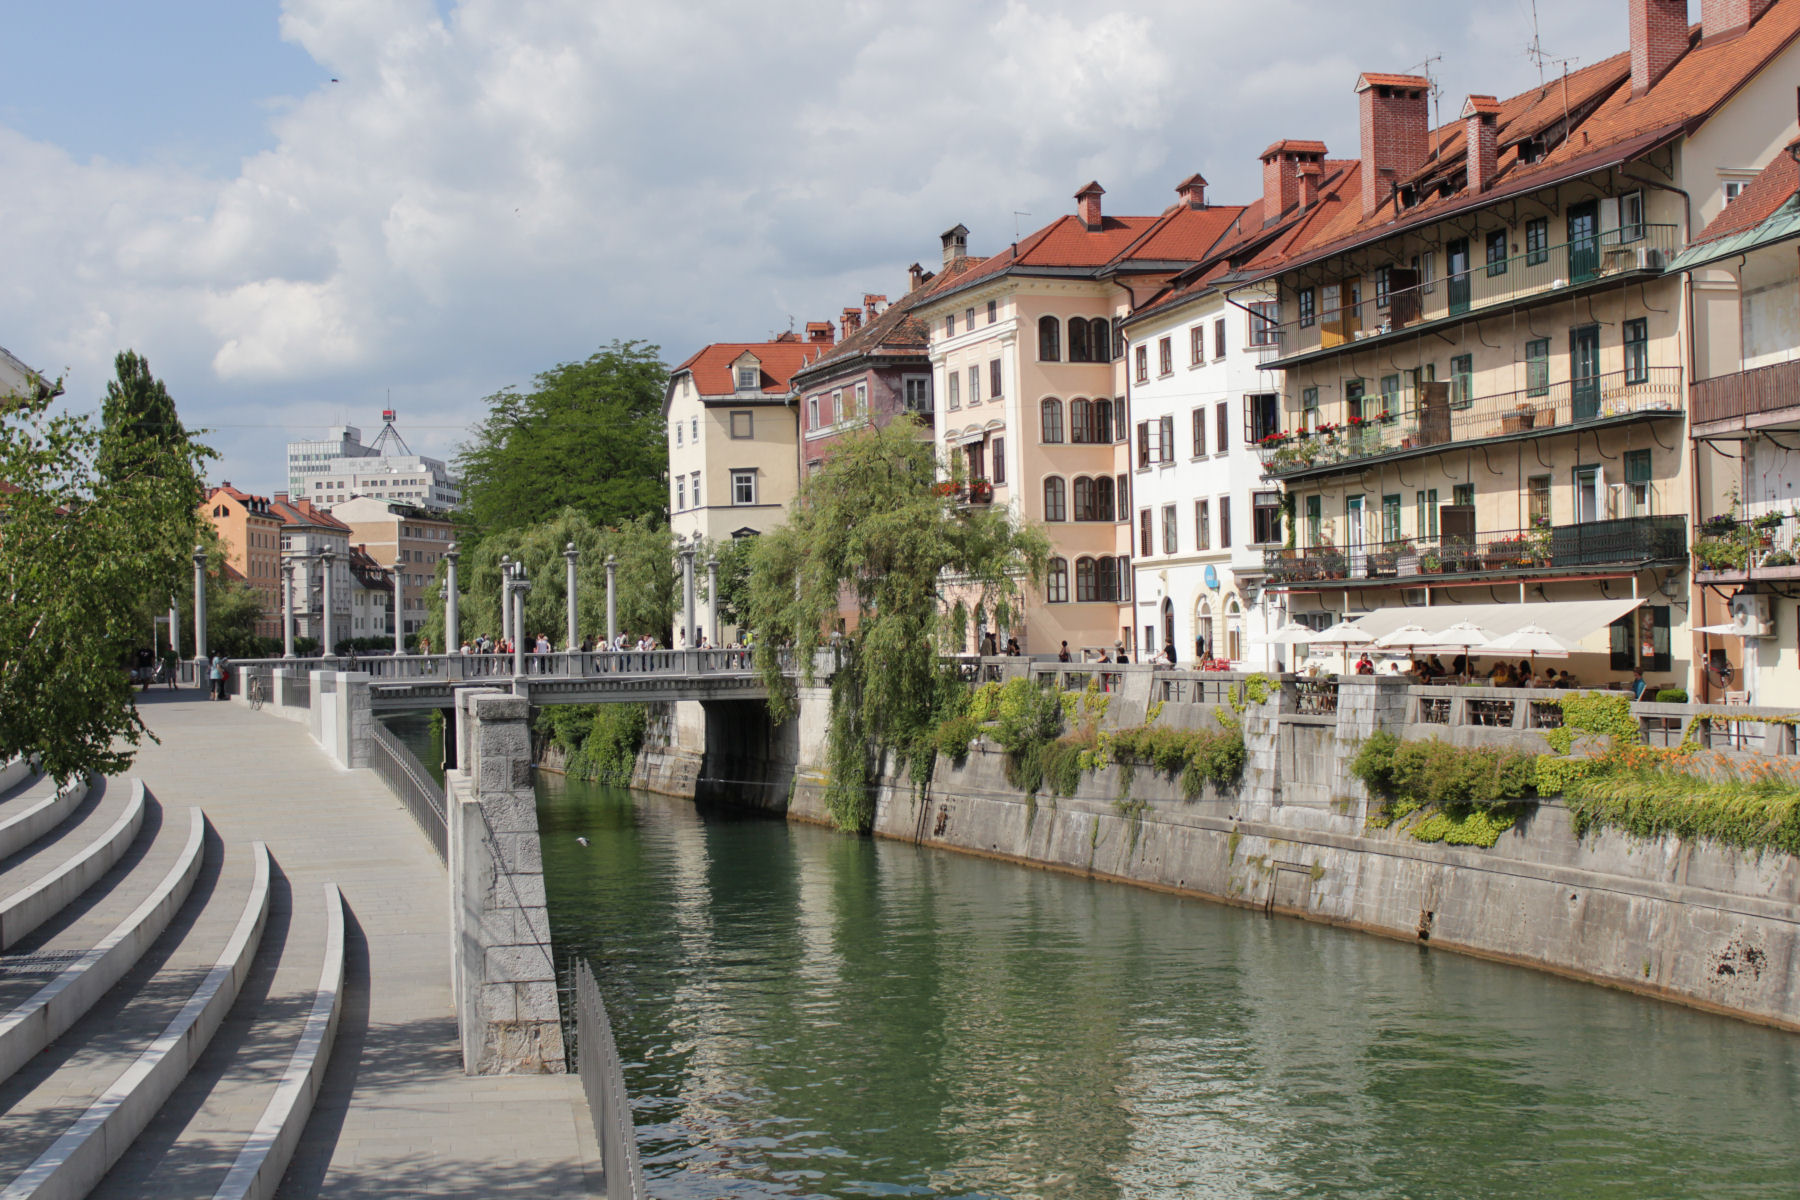 The Ljubljanica River, lined with cafés and restaurants meanders through the town center